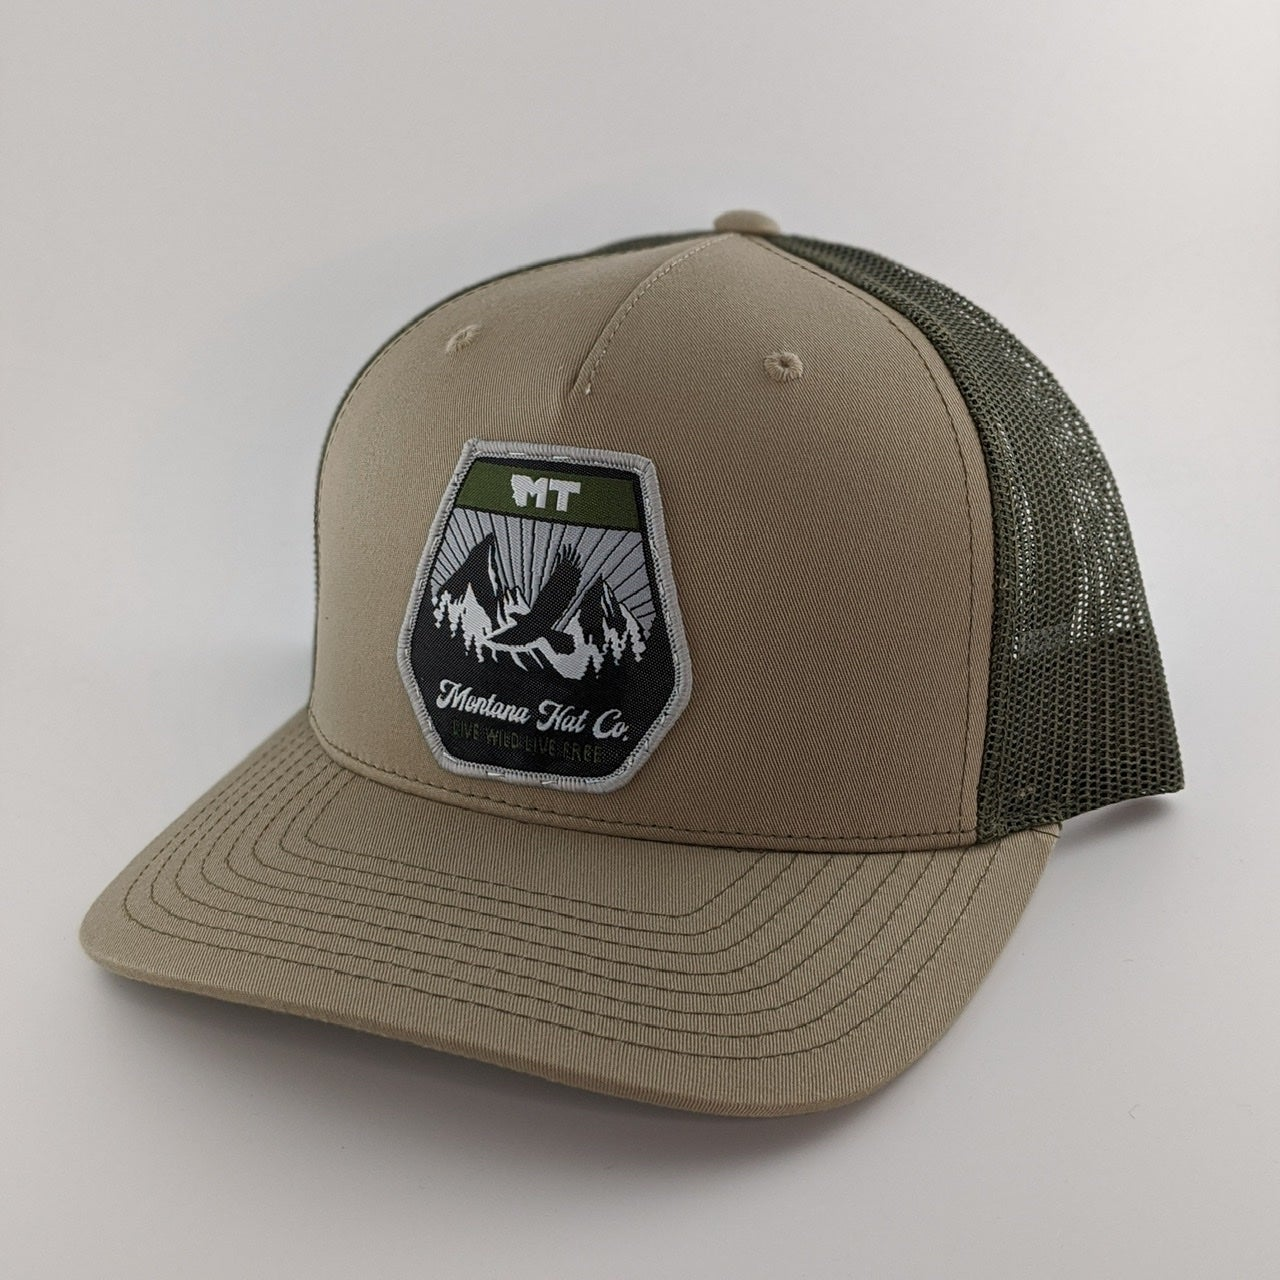 Image of Montana Eagle Patch Hat - Khaki / Loden Green